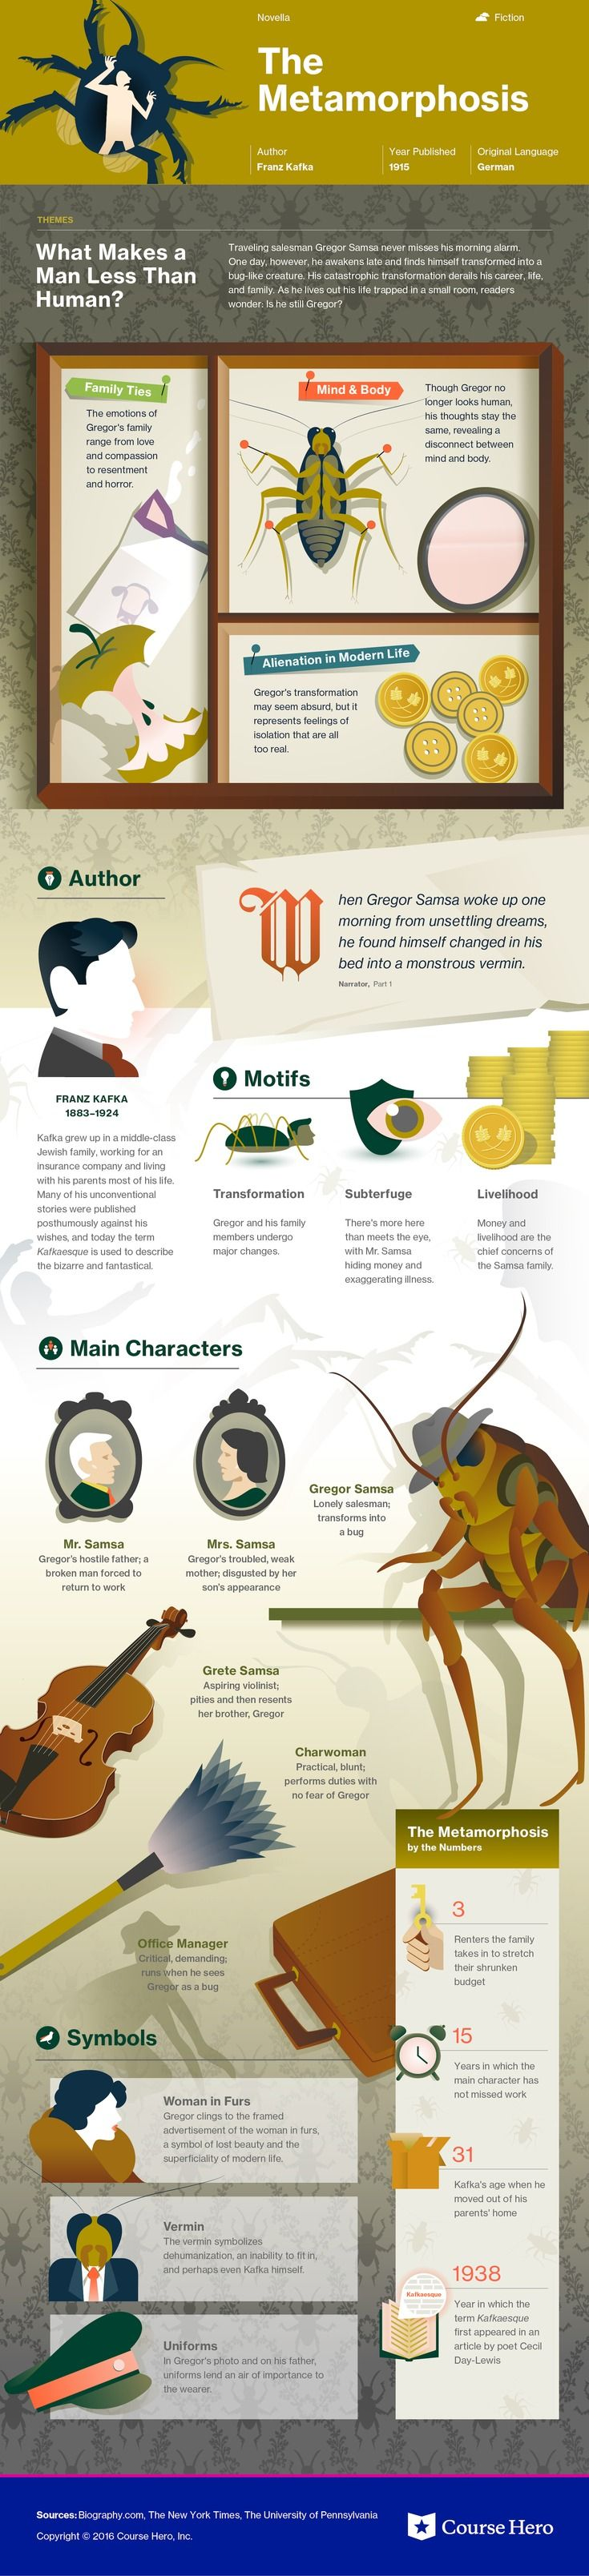 This @CourseHero infographic on The Metamorphosis is both visually stunning and informative!